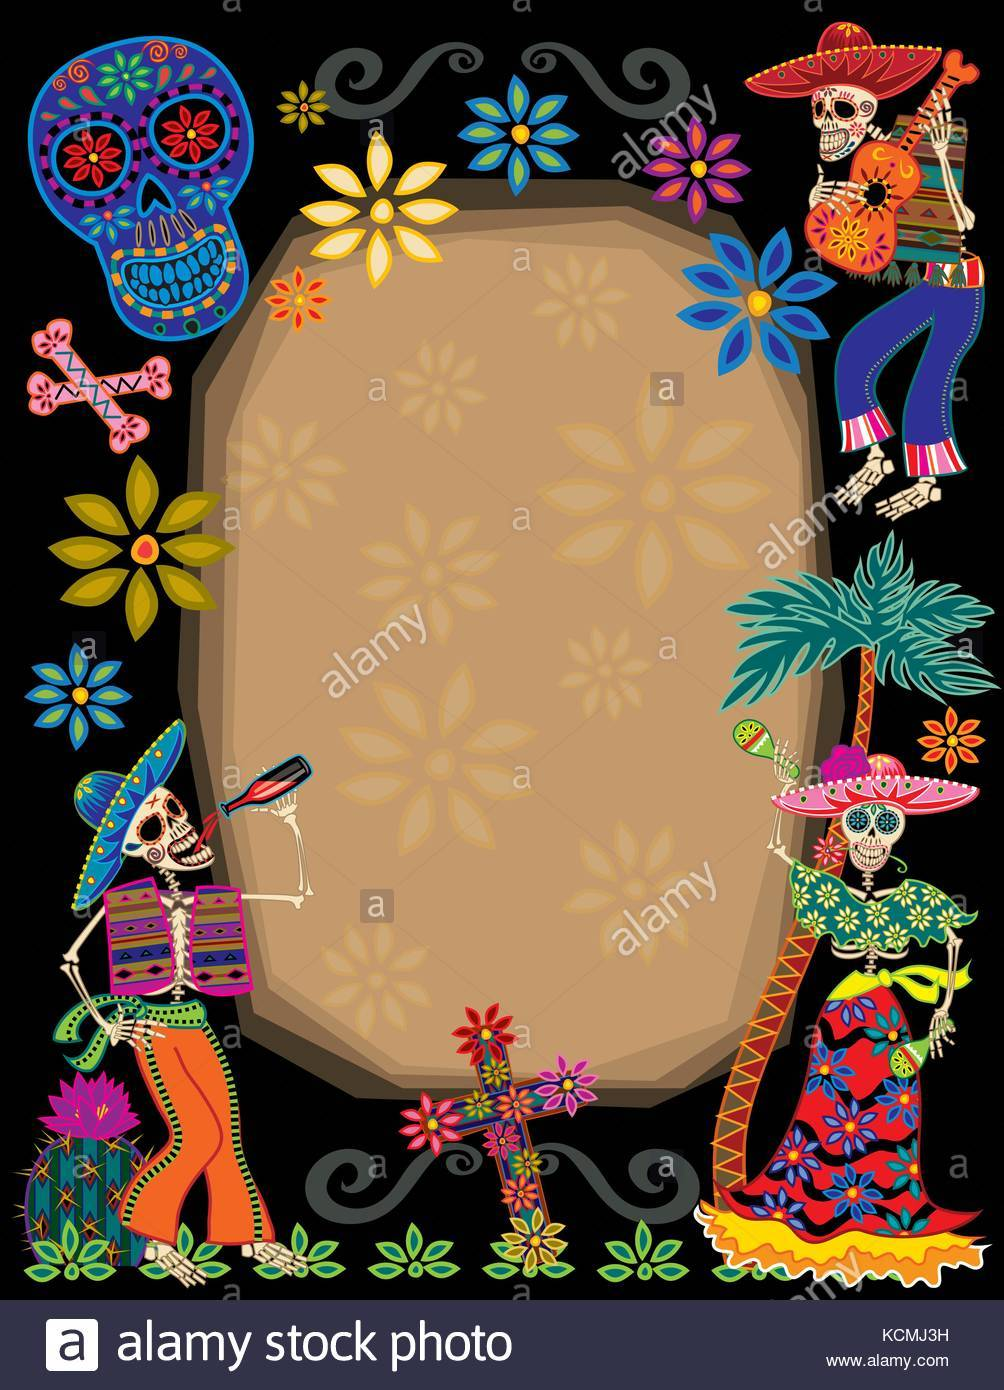 Day of the dead border clipart 8 » Clipart Portal.